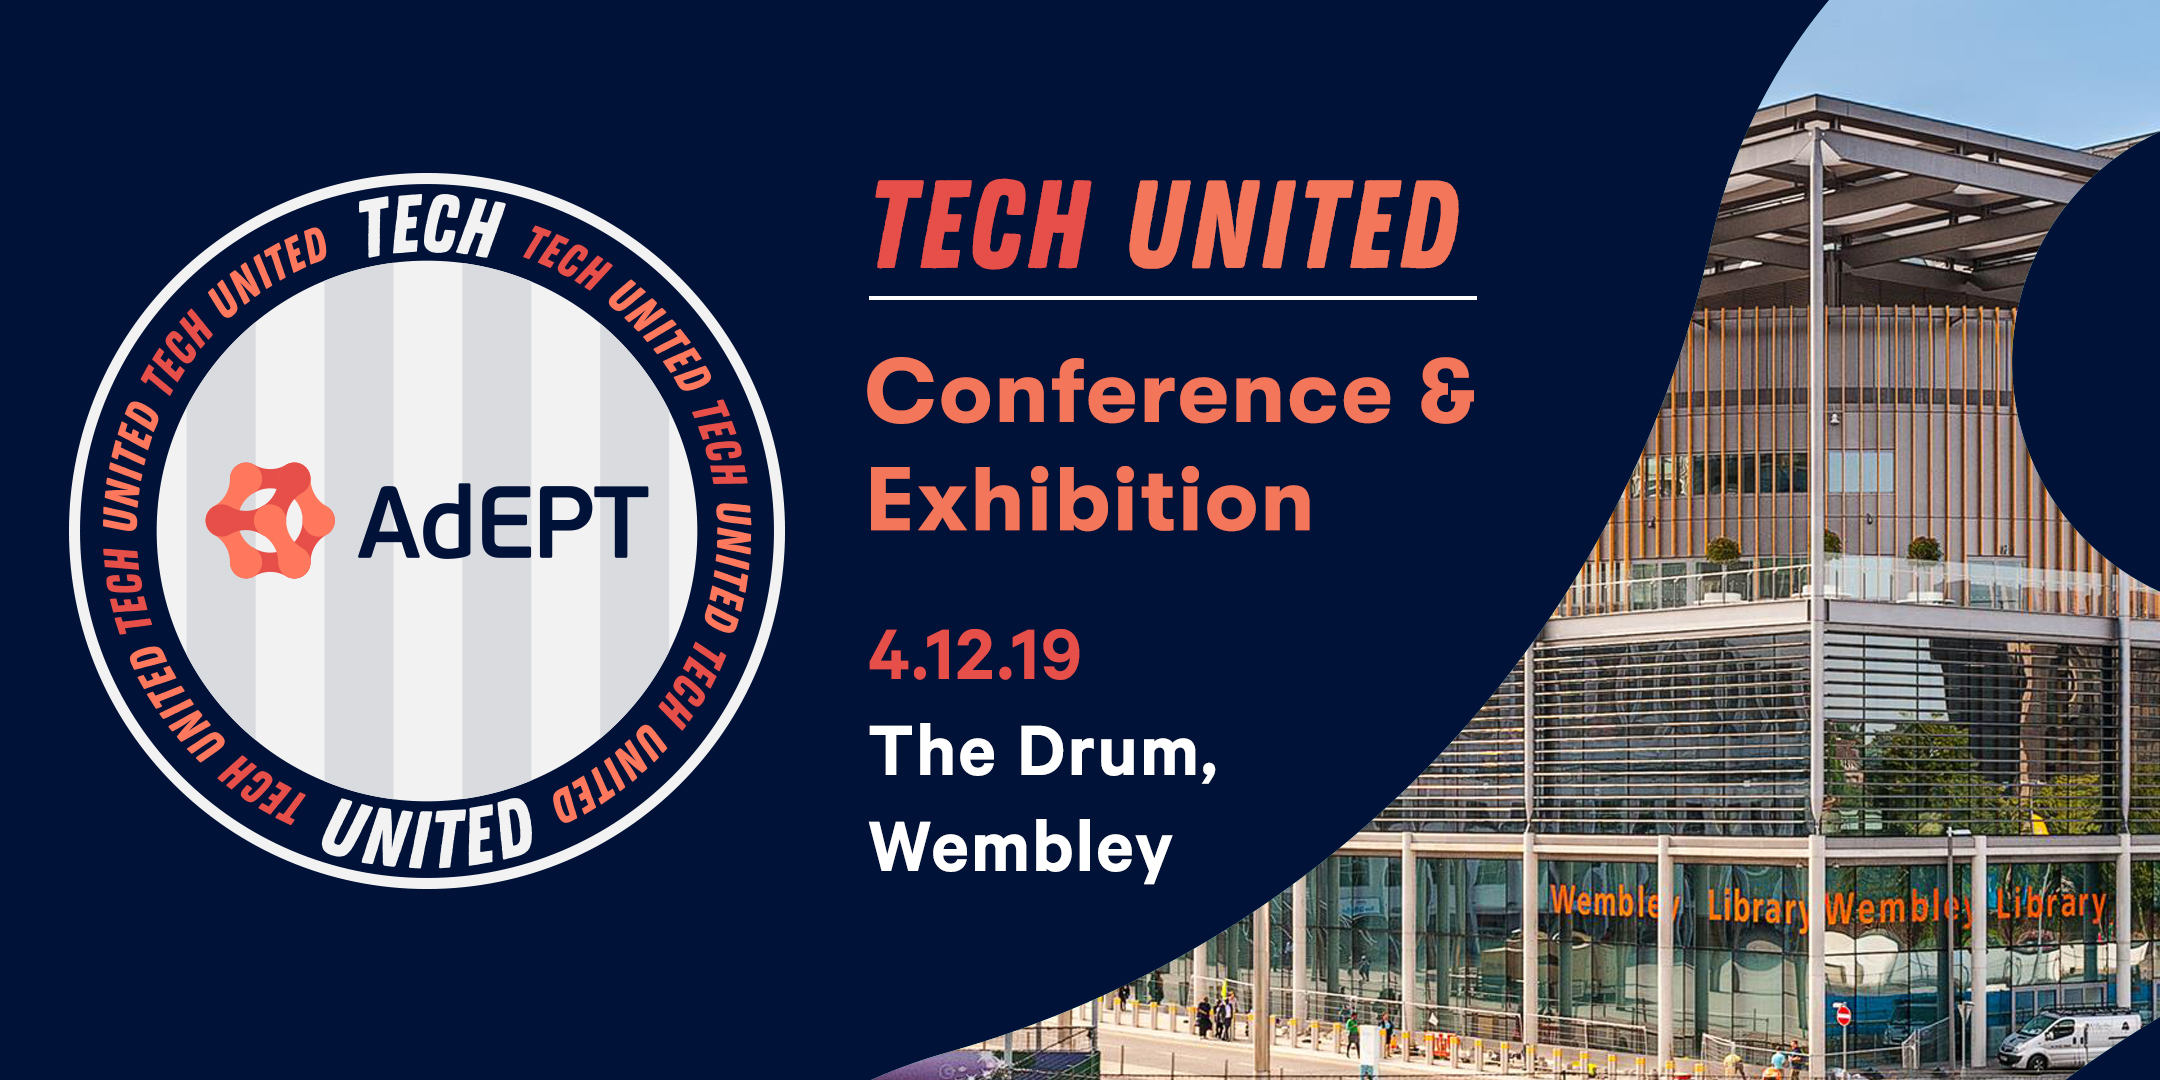 Tech United – AdEPT Group Conference & Exhibition